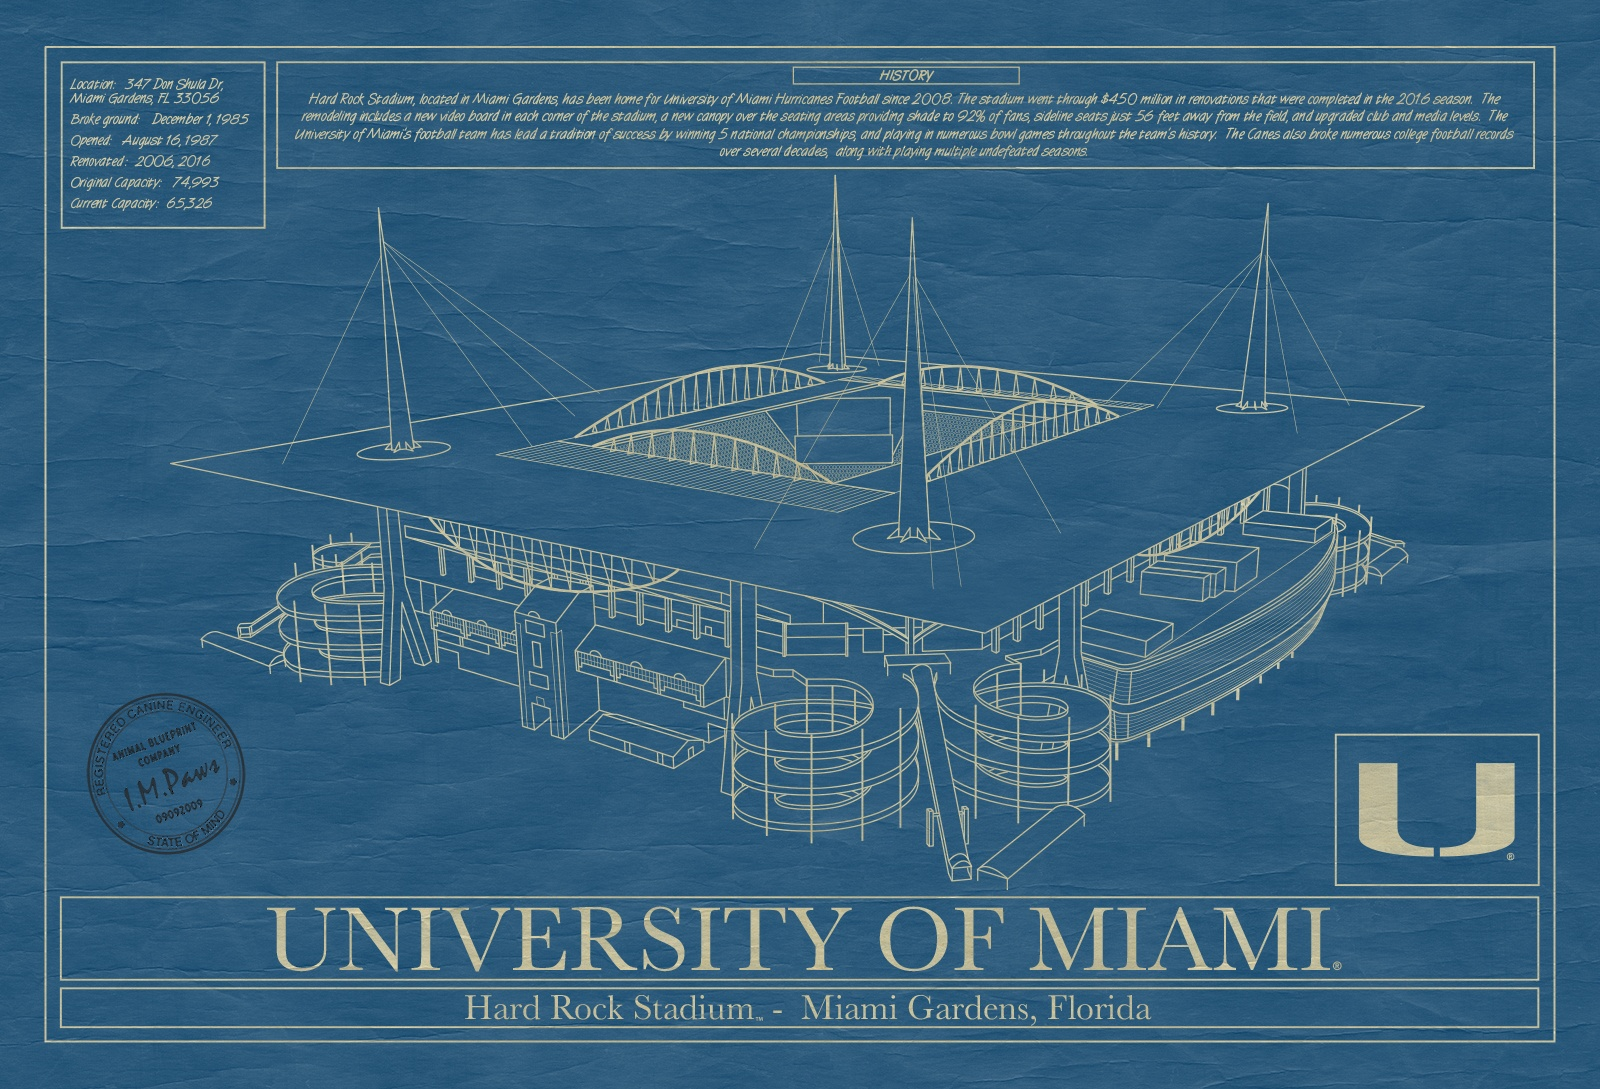 Miami hard rock stadium blueprint art stadium blueprint company miami hard rock stadium blueprint art malvernweather Choice Image